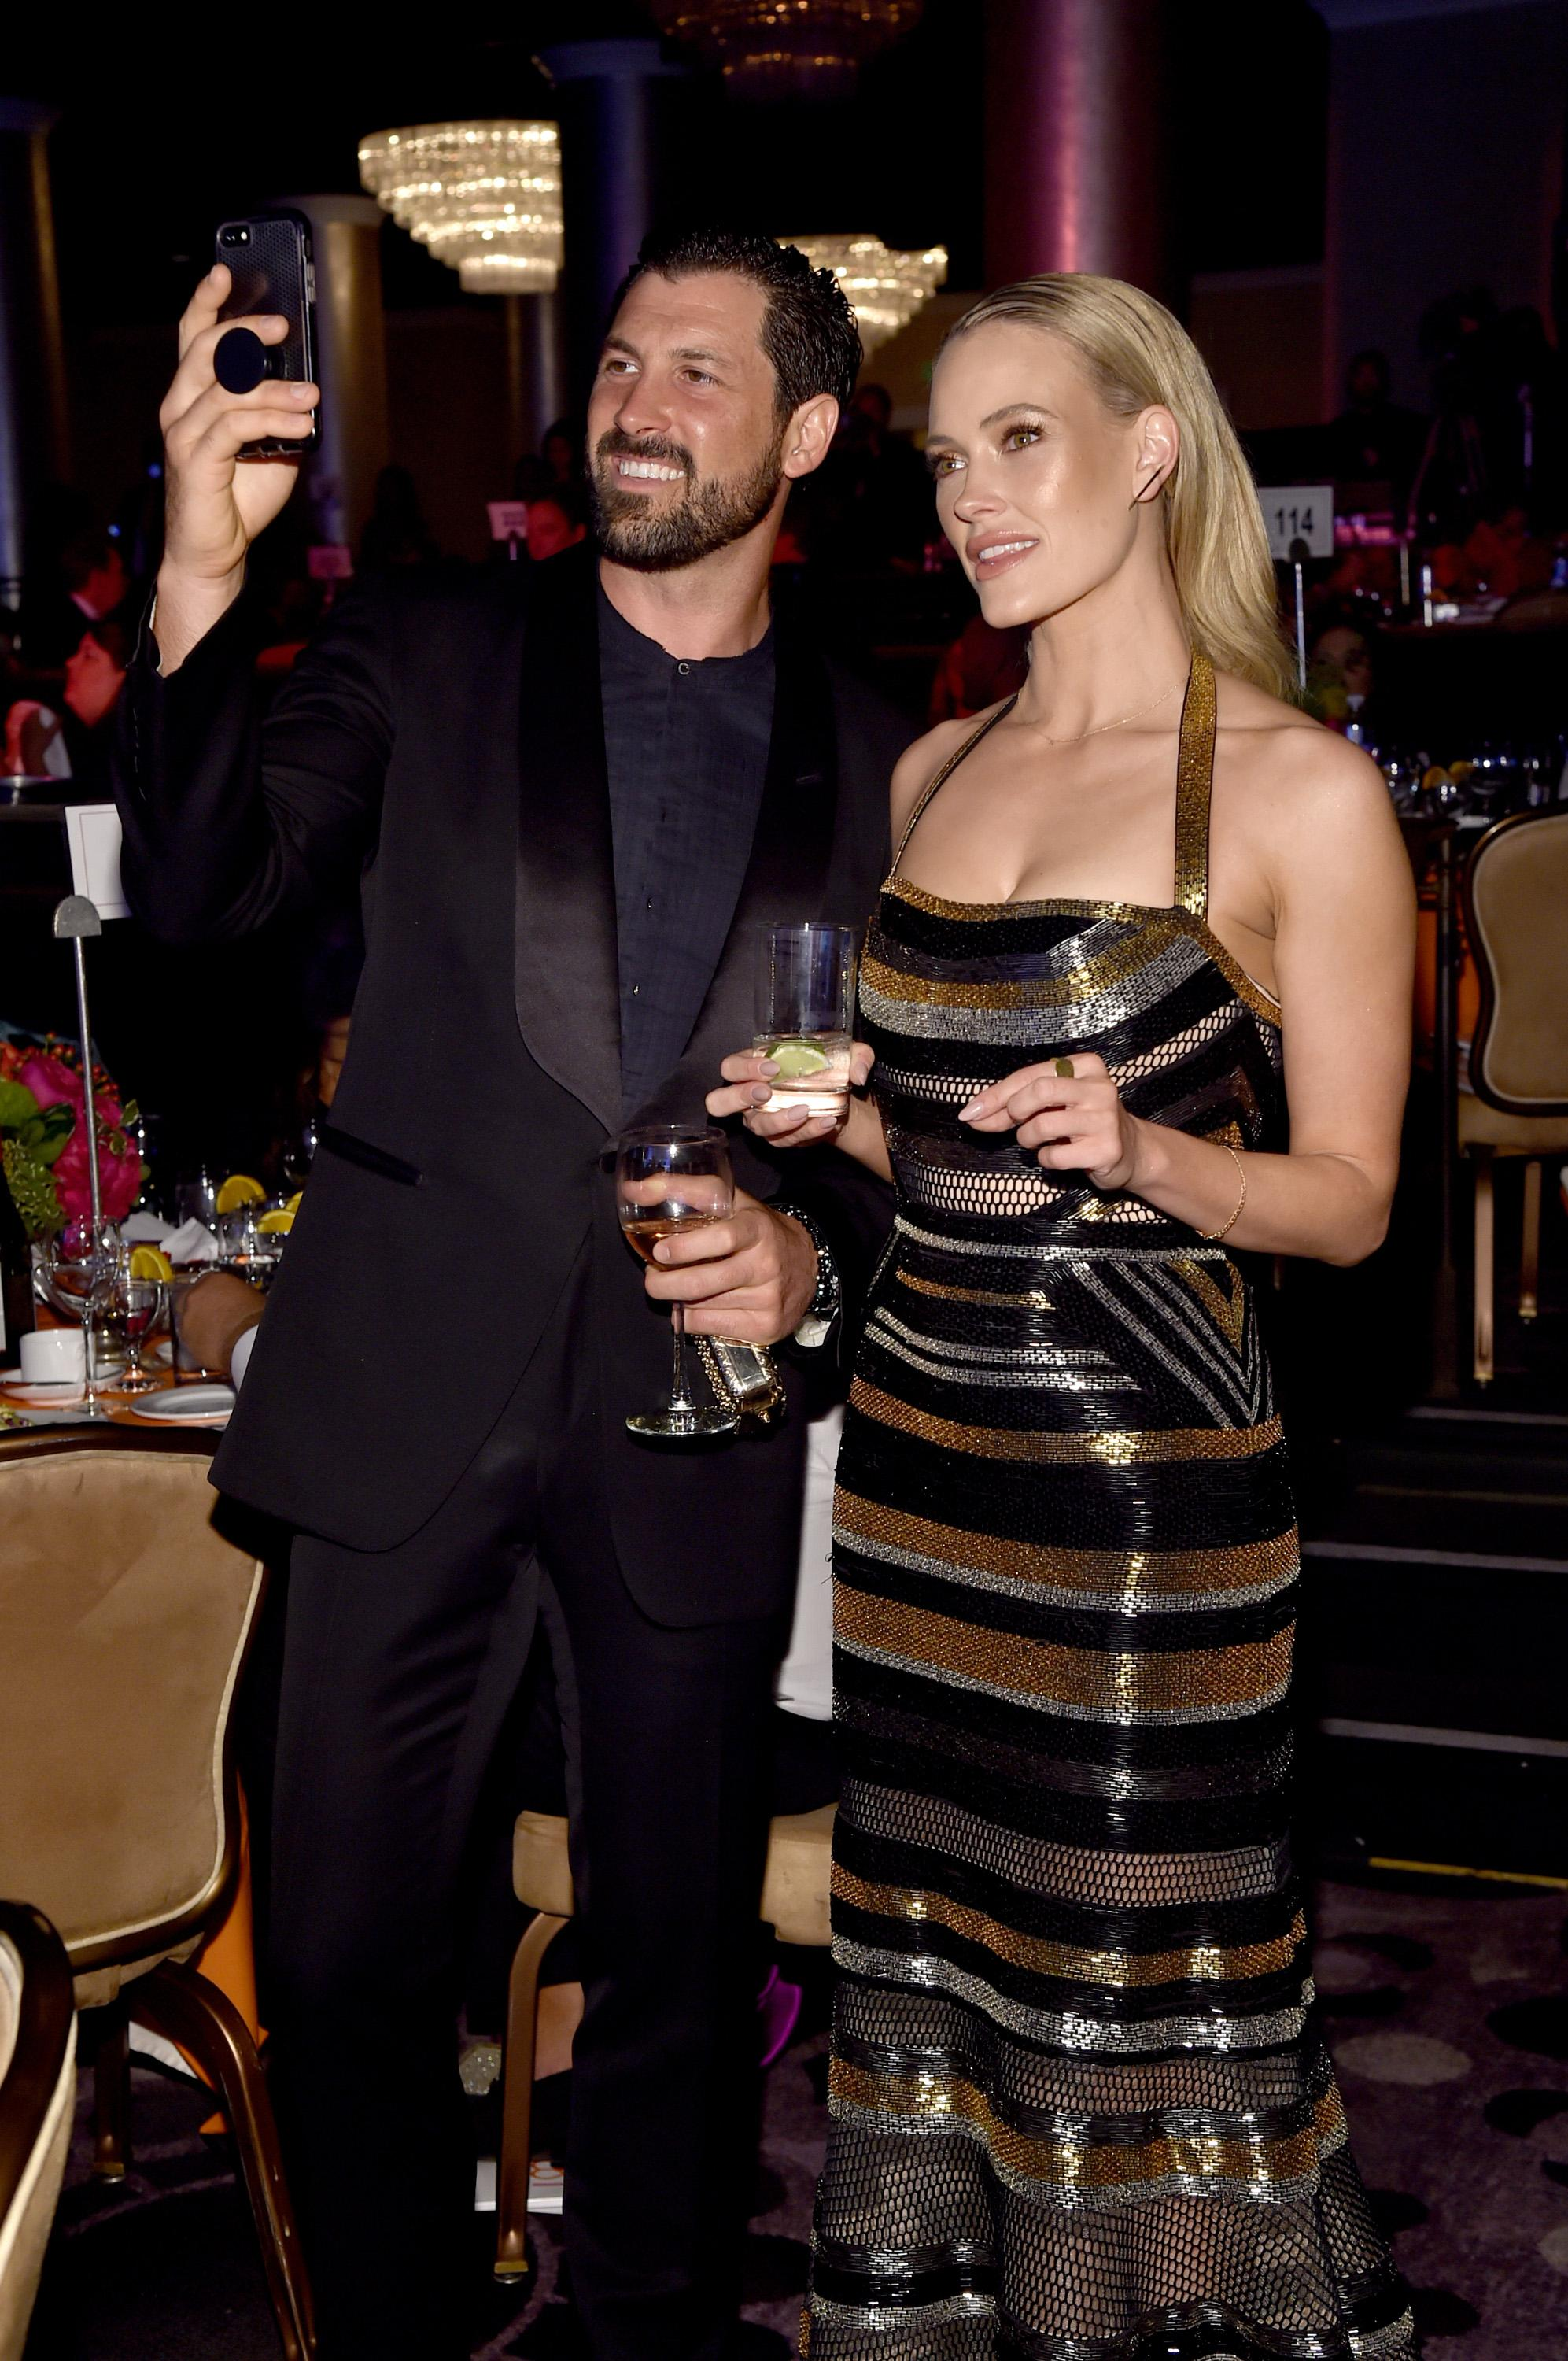 maks and peta dating 2014